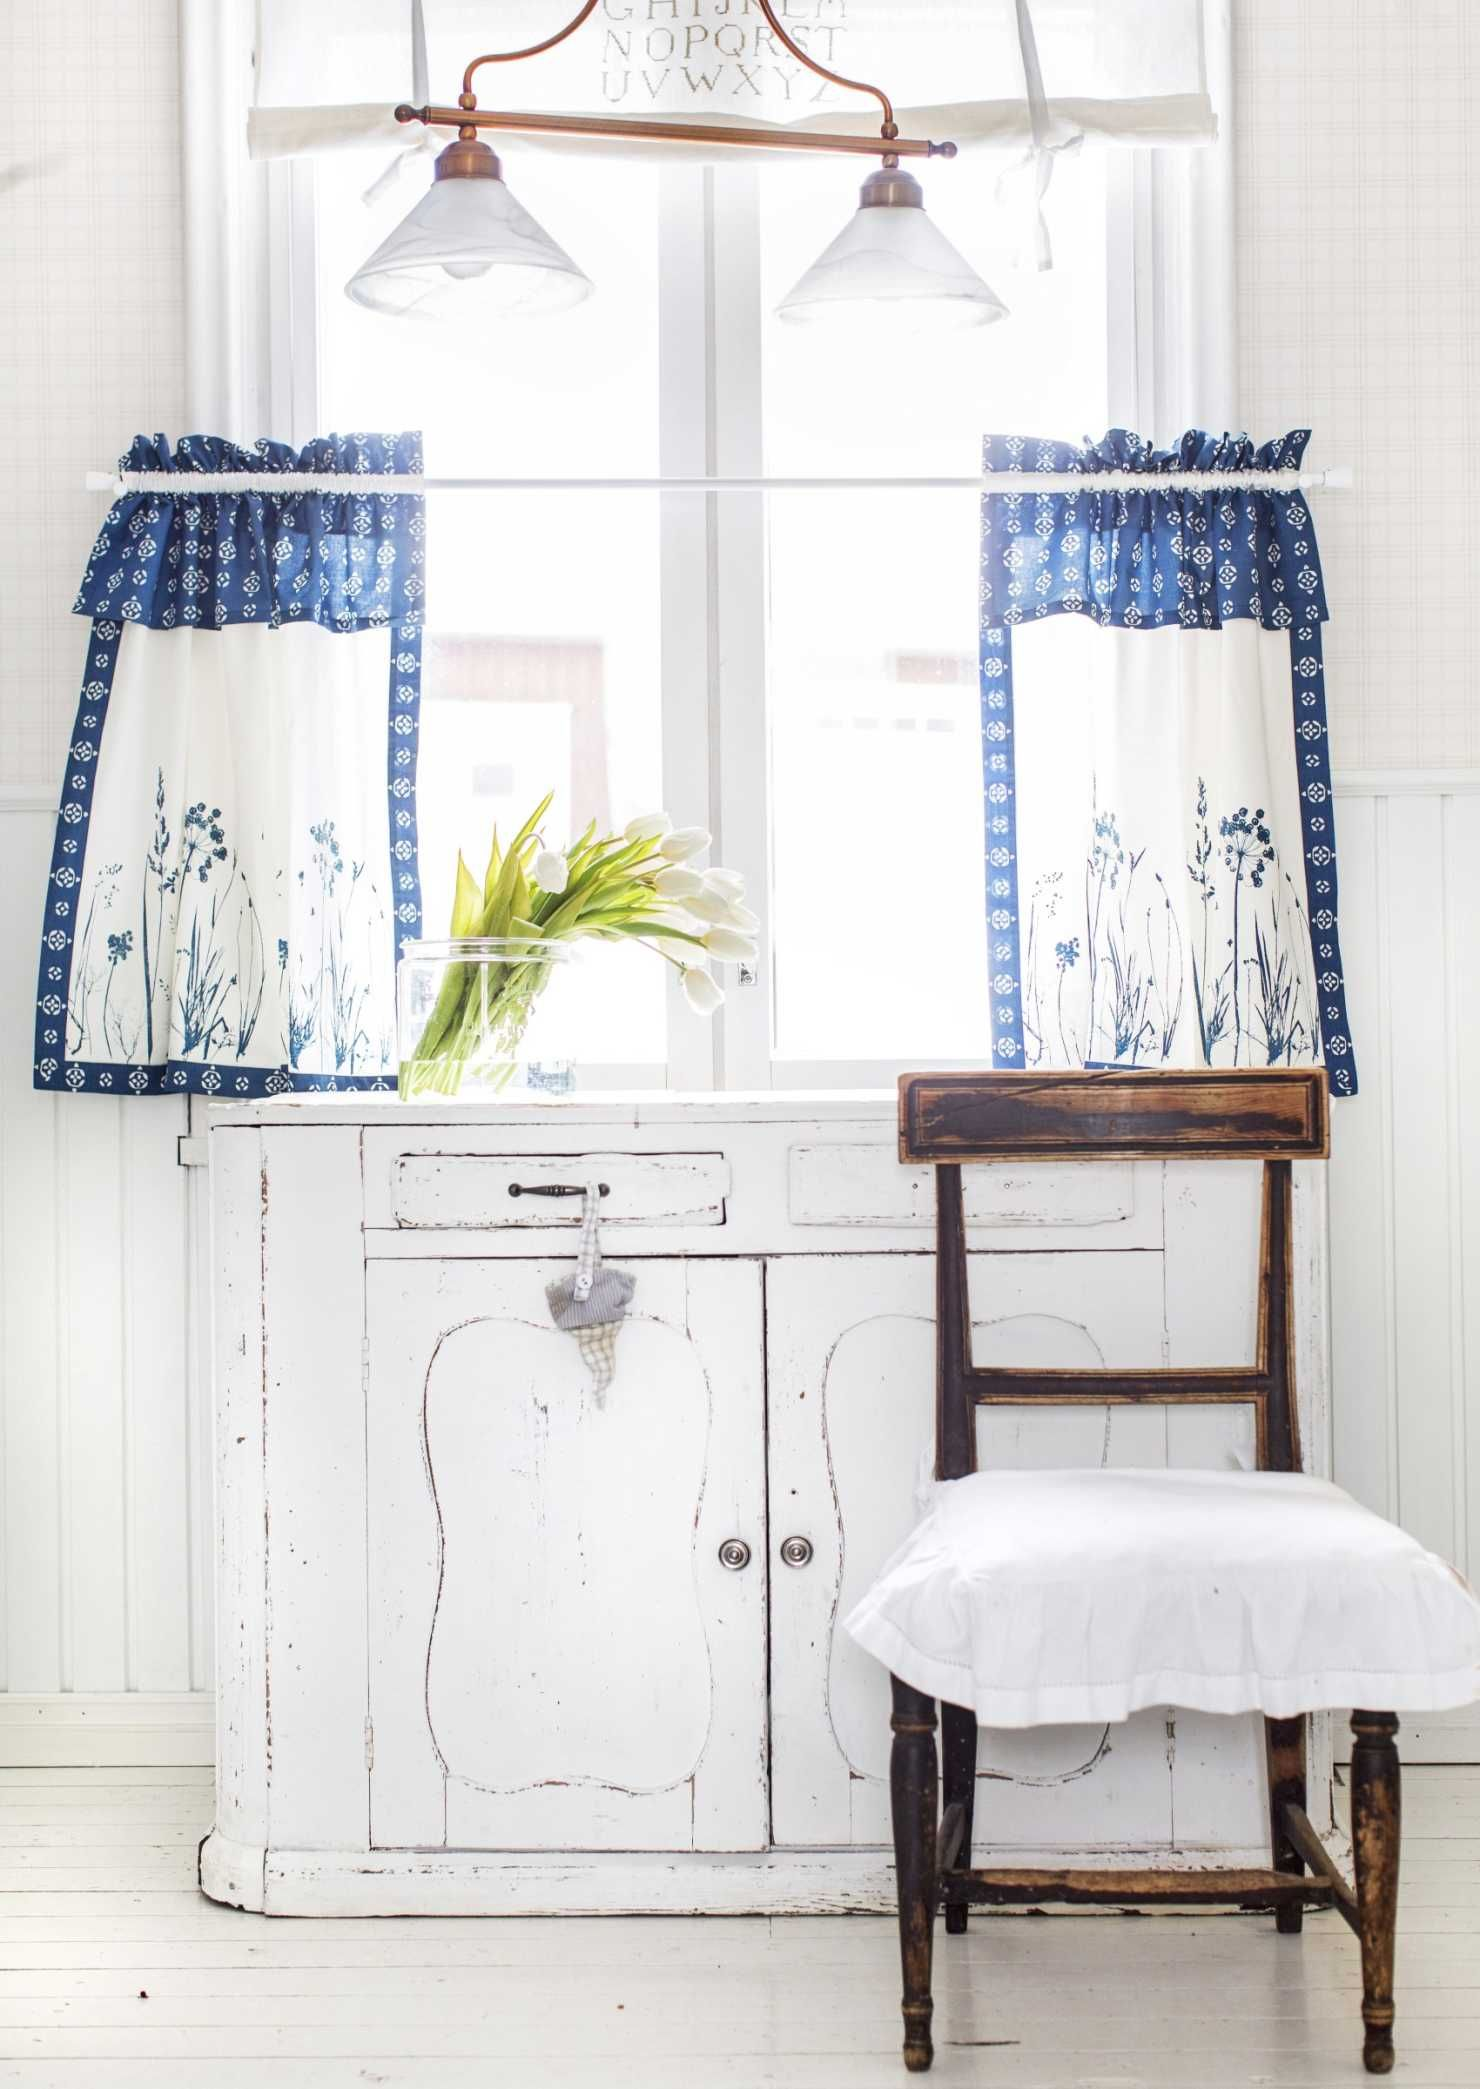 pretty vintage kitchen cabinet and window coverings ...